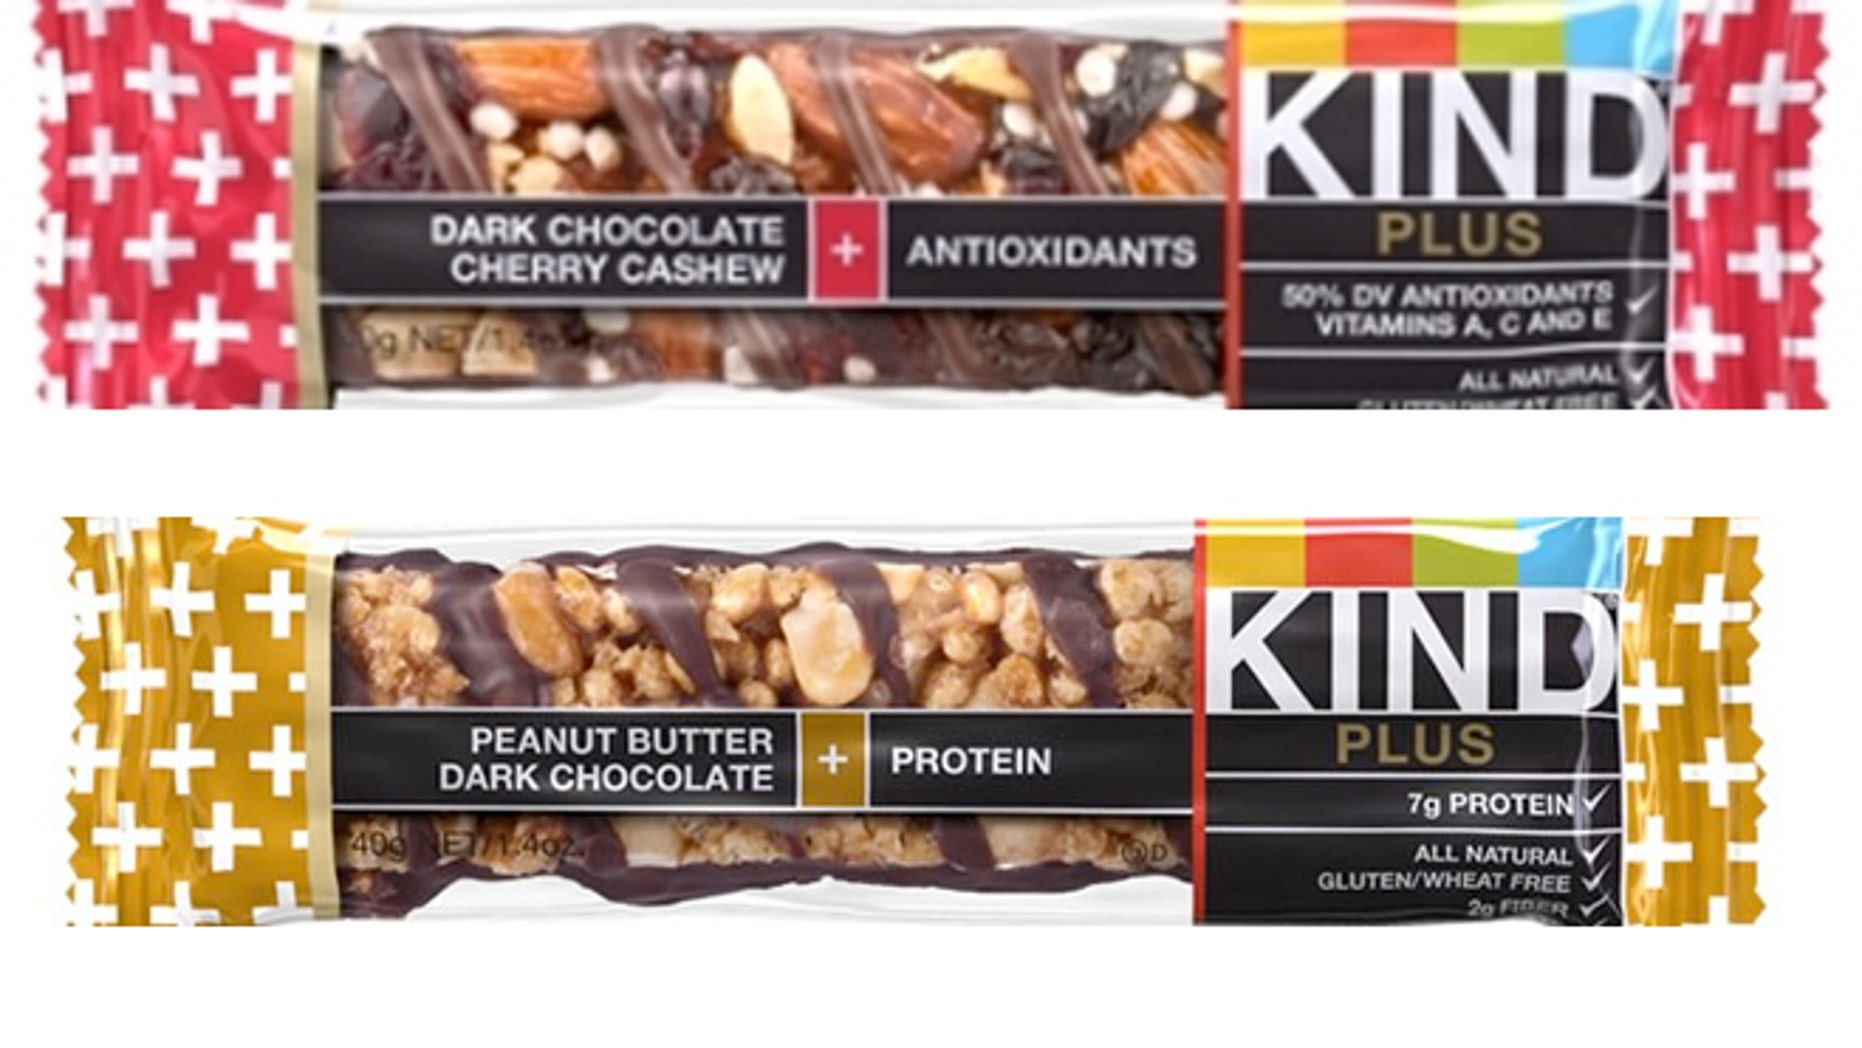 The FDA has identified at least four bars -- KIND Fruit & Nut Almond & Apricot, KIND Fruit & Nut Almond & Coconut, KIND Plus Peanut Butter Dark Chocolate + Protein, and KIND Plus Dark Chocolate Cherry Cashew + Antioxidants -- that contain anywhere from 2.5 to 3.5g of saturated fat per 40g.